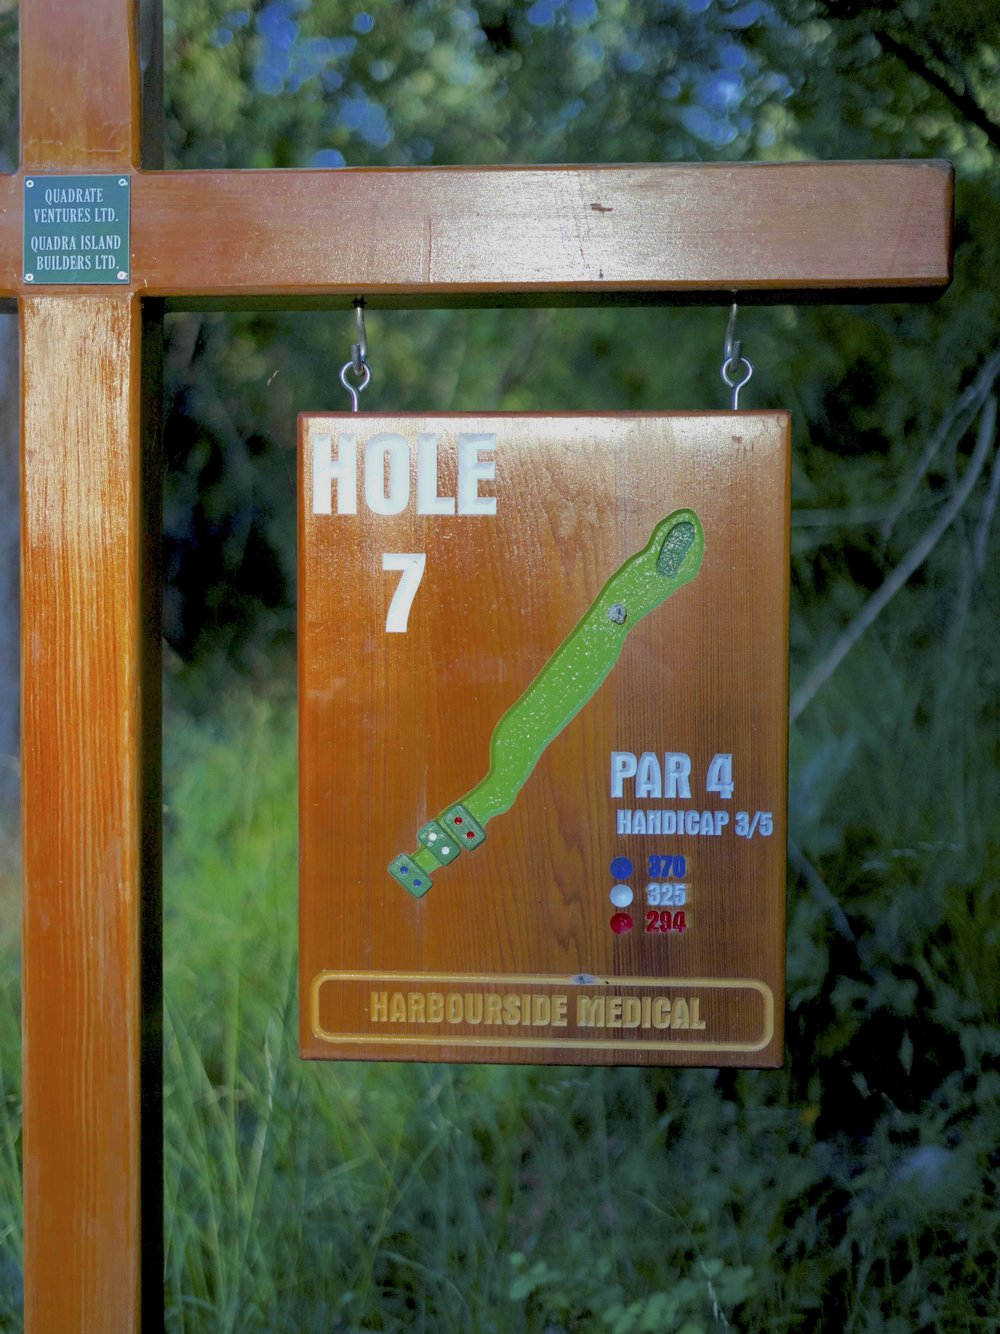 QuadraGolf_Hole7_sign_DSC00497.jpg